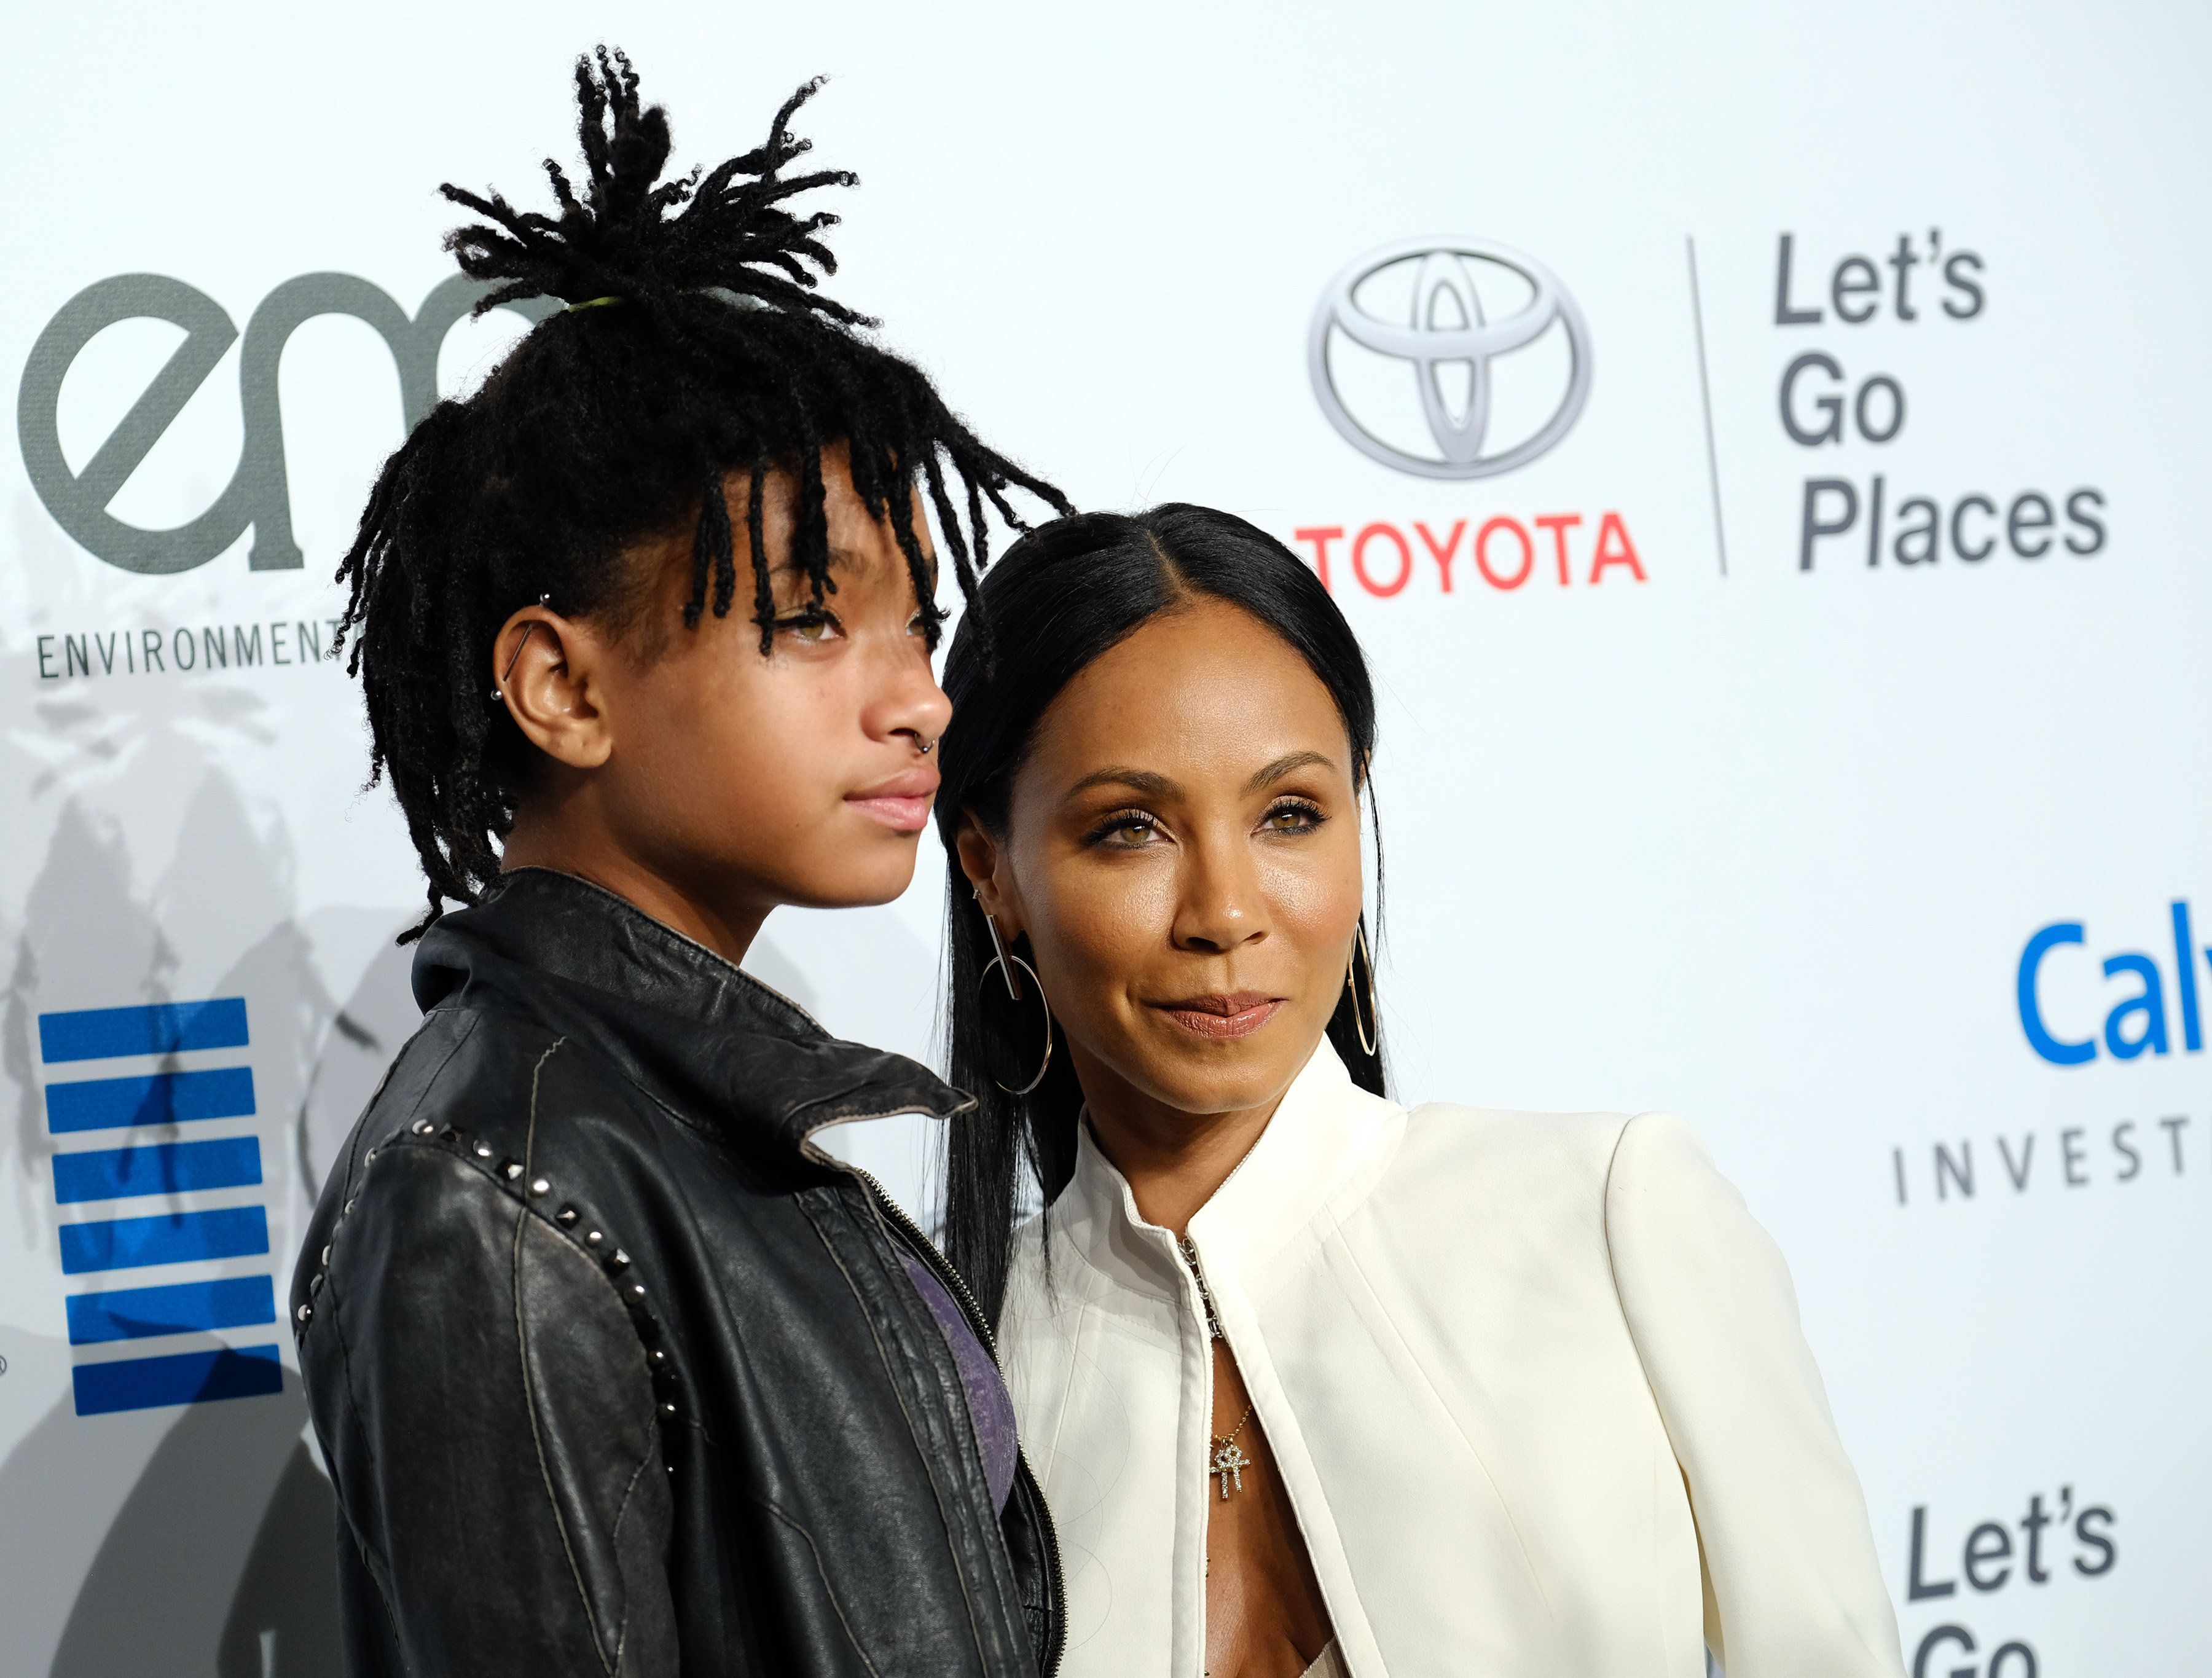 Jada Pinkett-Smith and Willow Smith attend the 26th annual EMA awards at Warner Bros studio lot in Burbank, on October 22, 2016. / AFP / CHRIS DELMAS        (Photo credit should read CHRIS DELMAS/AFP/Getty Images)